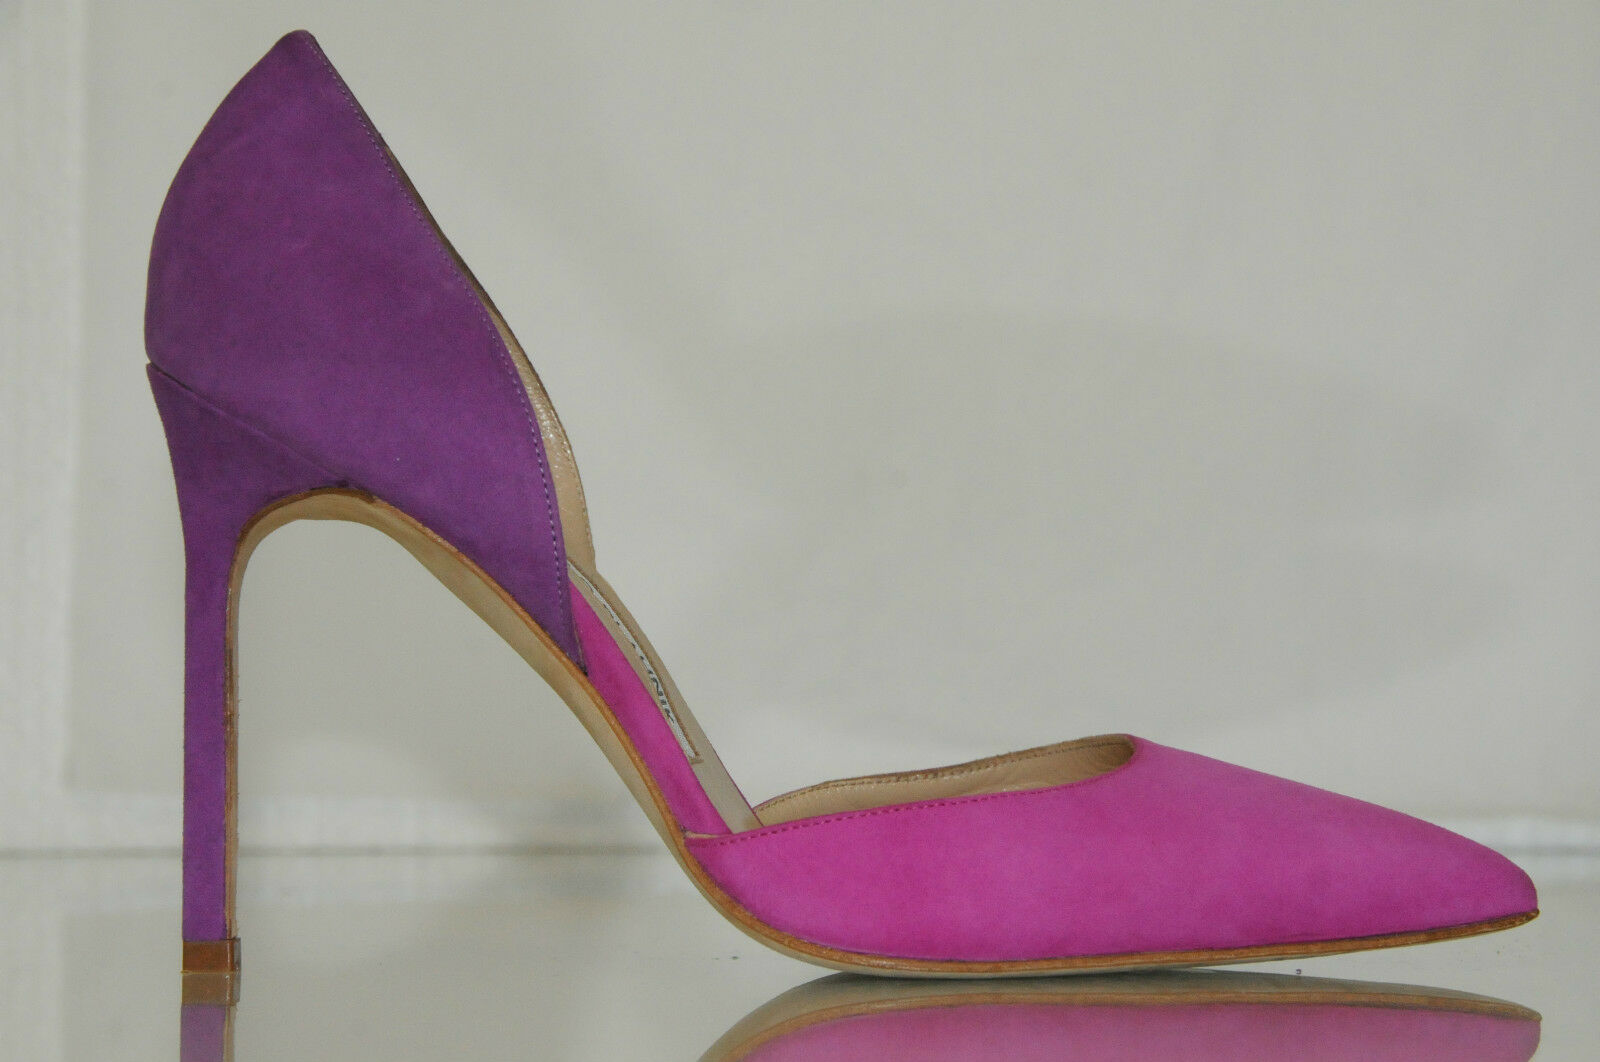 735 New Manolo Blahnik Tayler TAYLERBI Suede Pink Purple Pumps Dorsay shoes 37